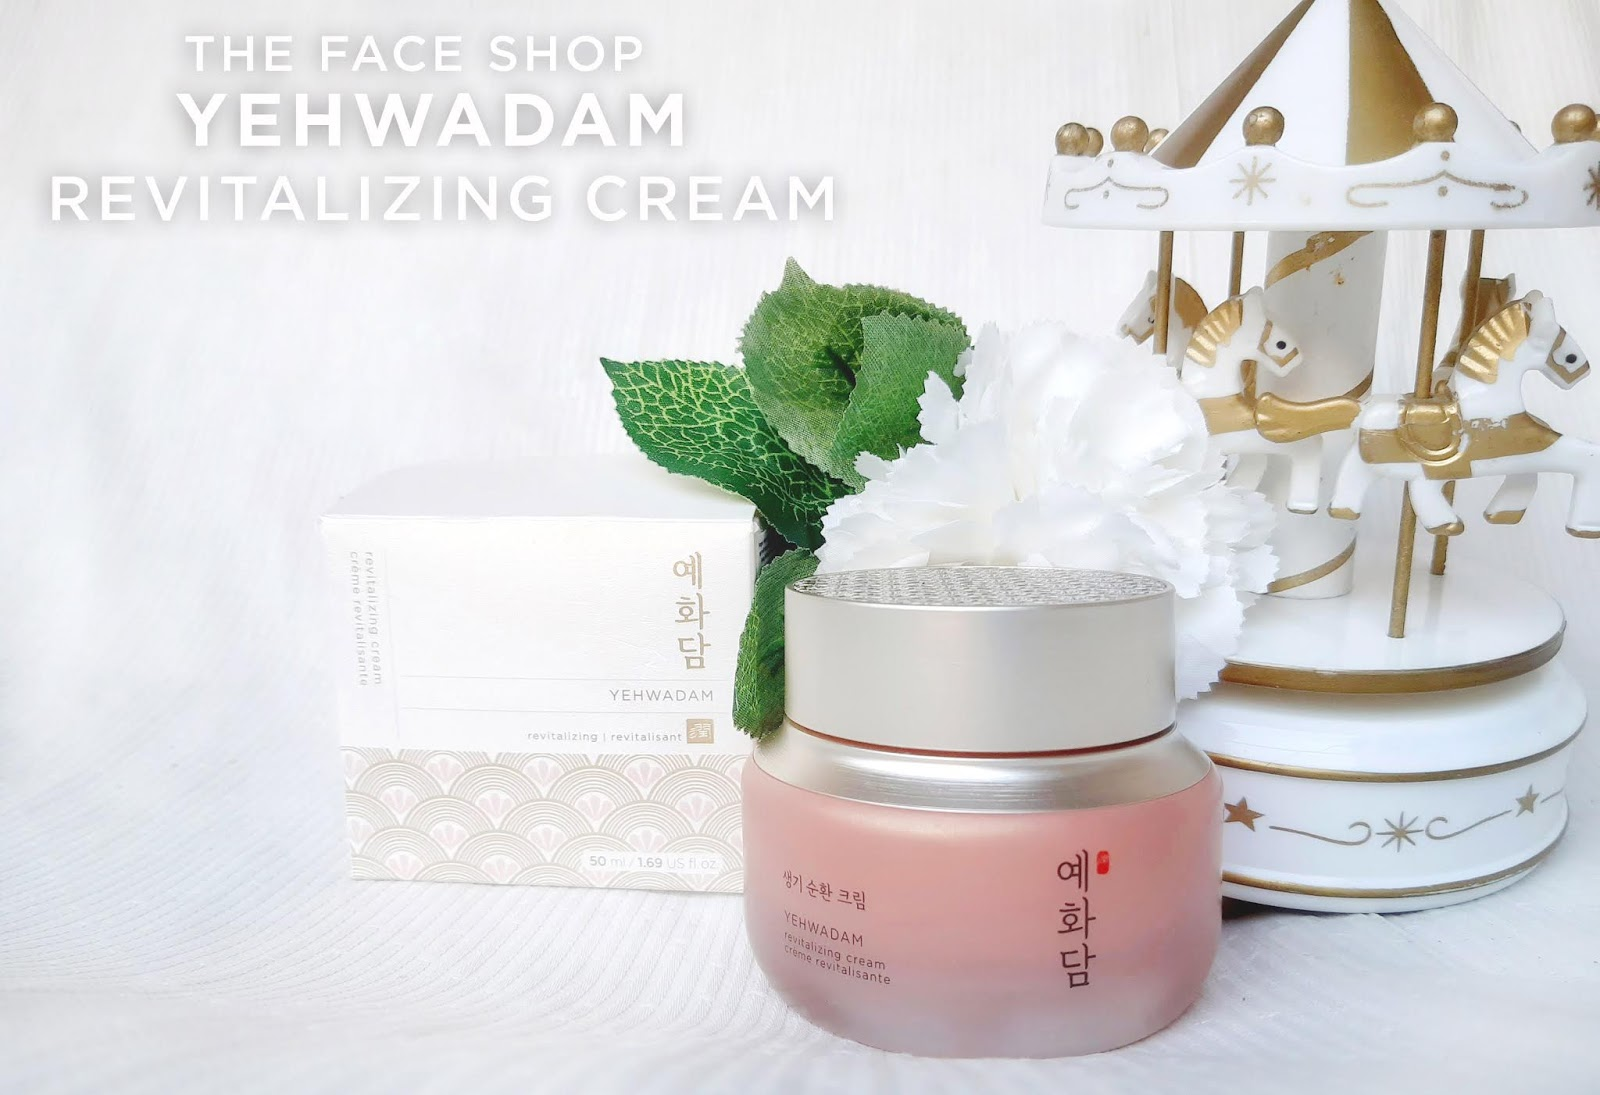 yehwadam revitalizing cream review